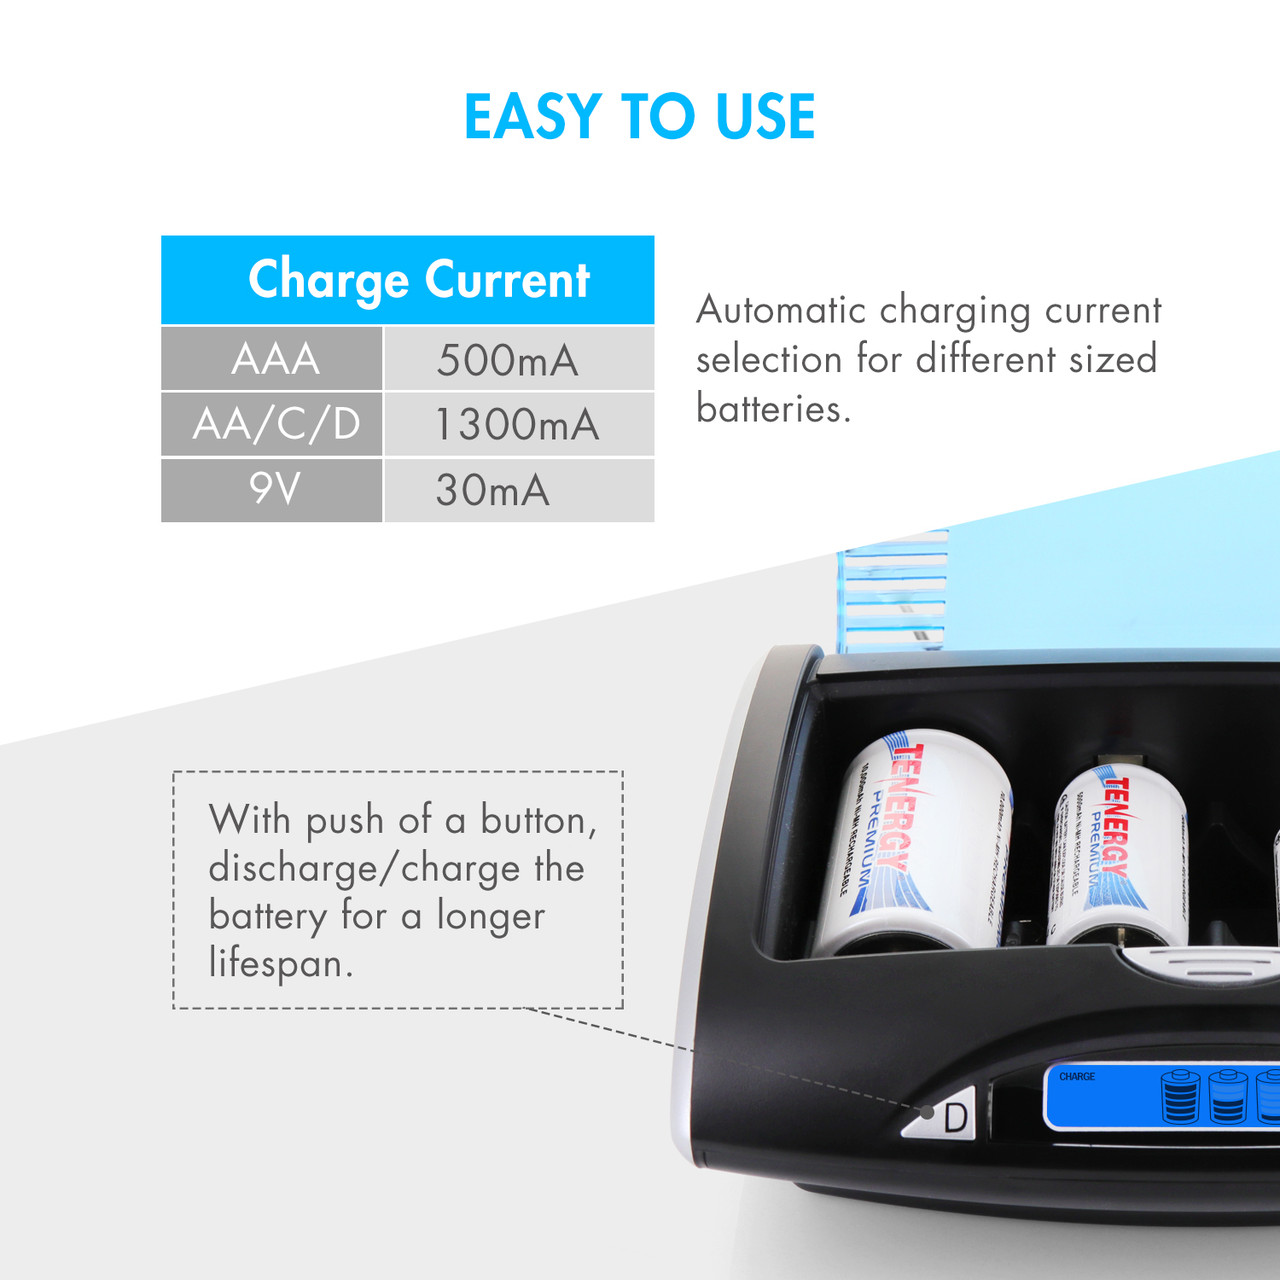 Combo: Tenergy T9688 Universal LCD Battery Charger + 8 Premium C 5000mAh NiMH Rechargeable Batteries